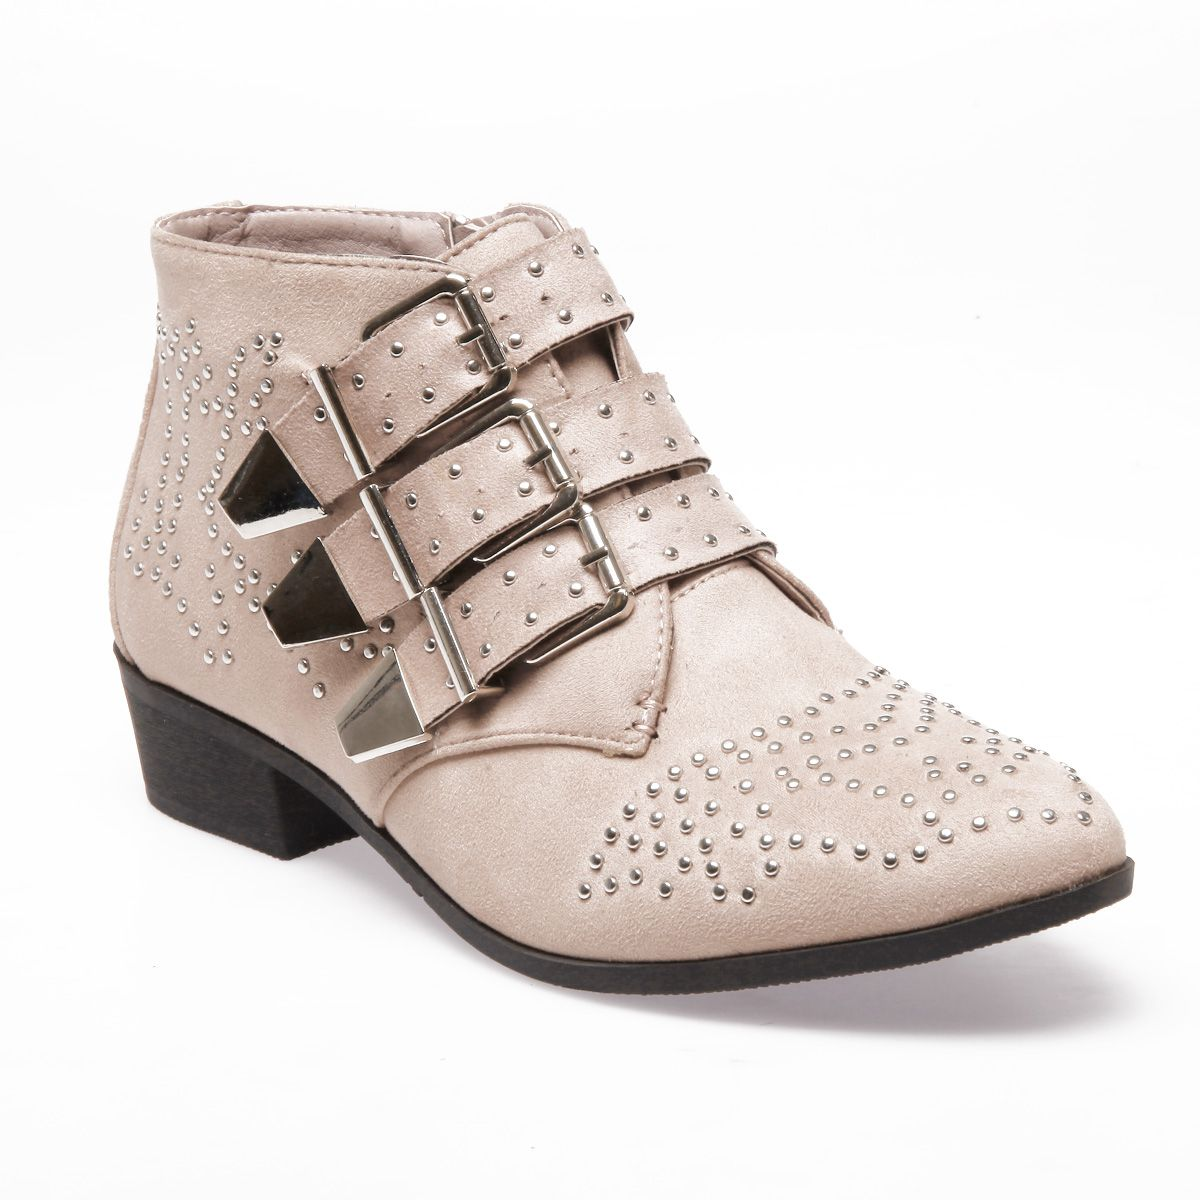 La Modeuse Bottines basses beiges à boucles et clous Beige - Chaussures Bottine Femme